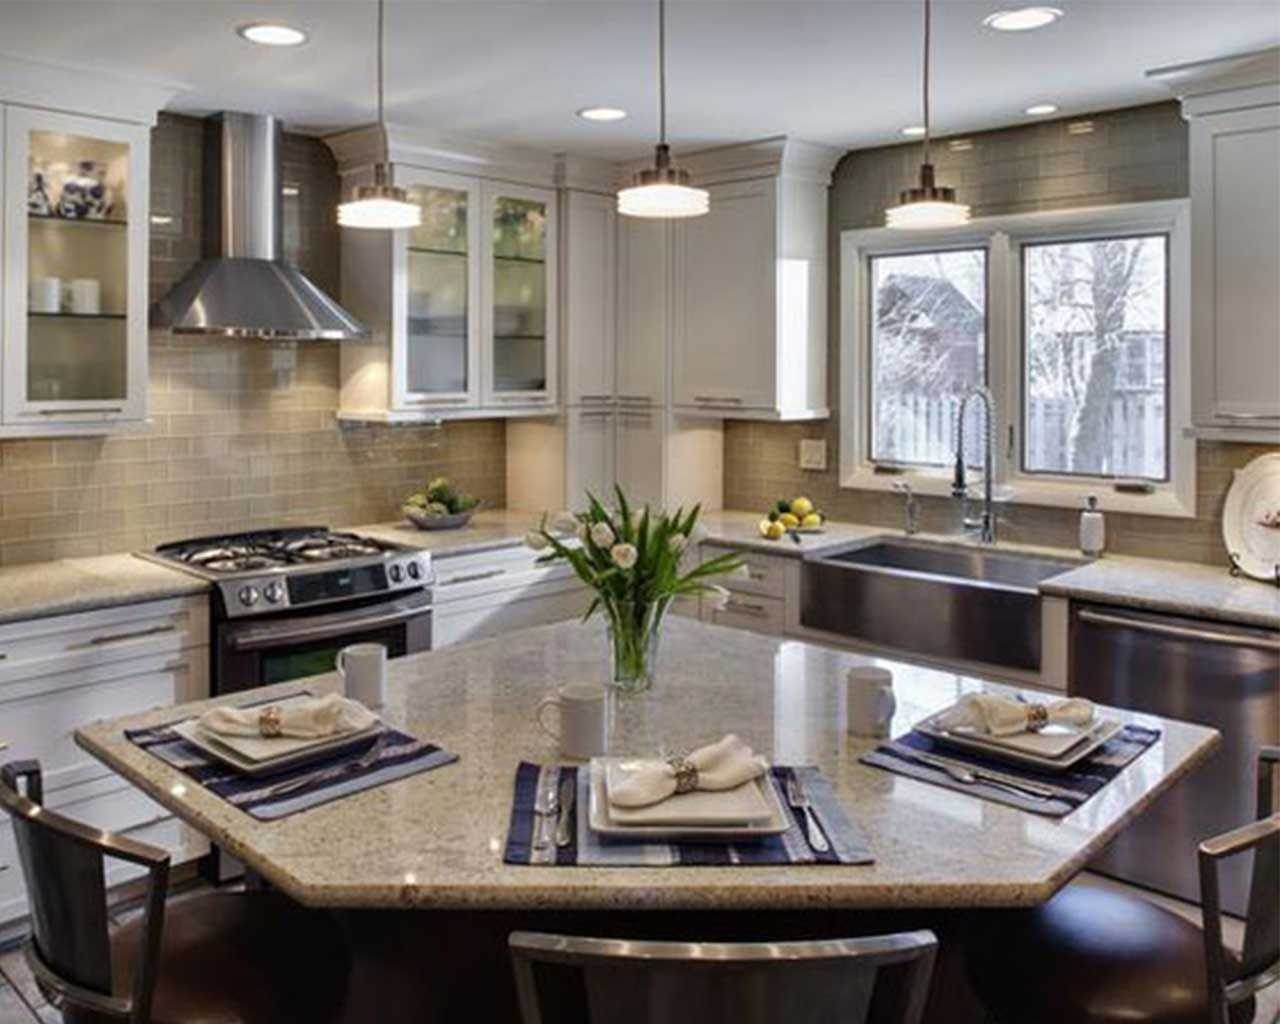 Small L Shaped Kitchens With Islands Google Search Home Decor